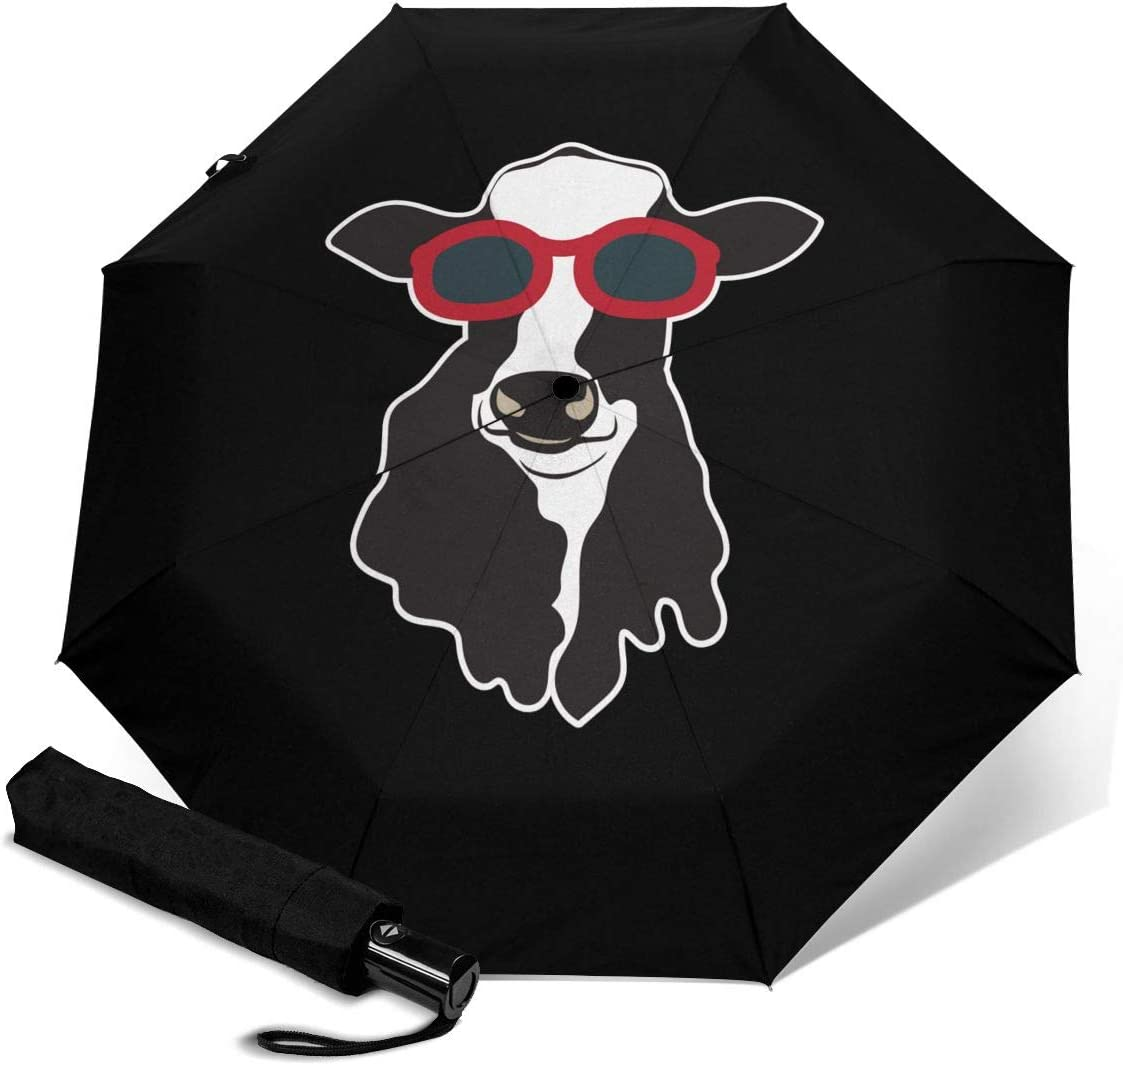 Cow Wearing Glasses Automatic Open Folding Compact Travel Umbrellas For Women